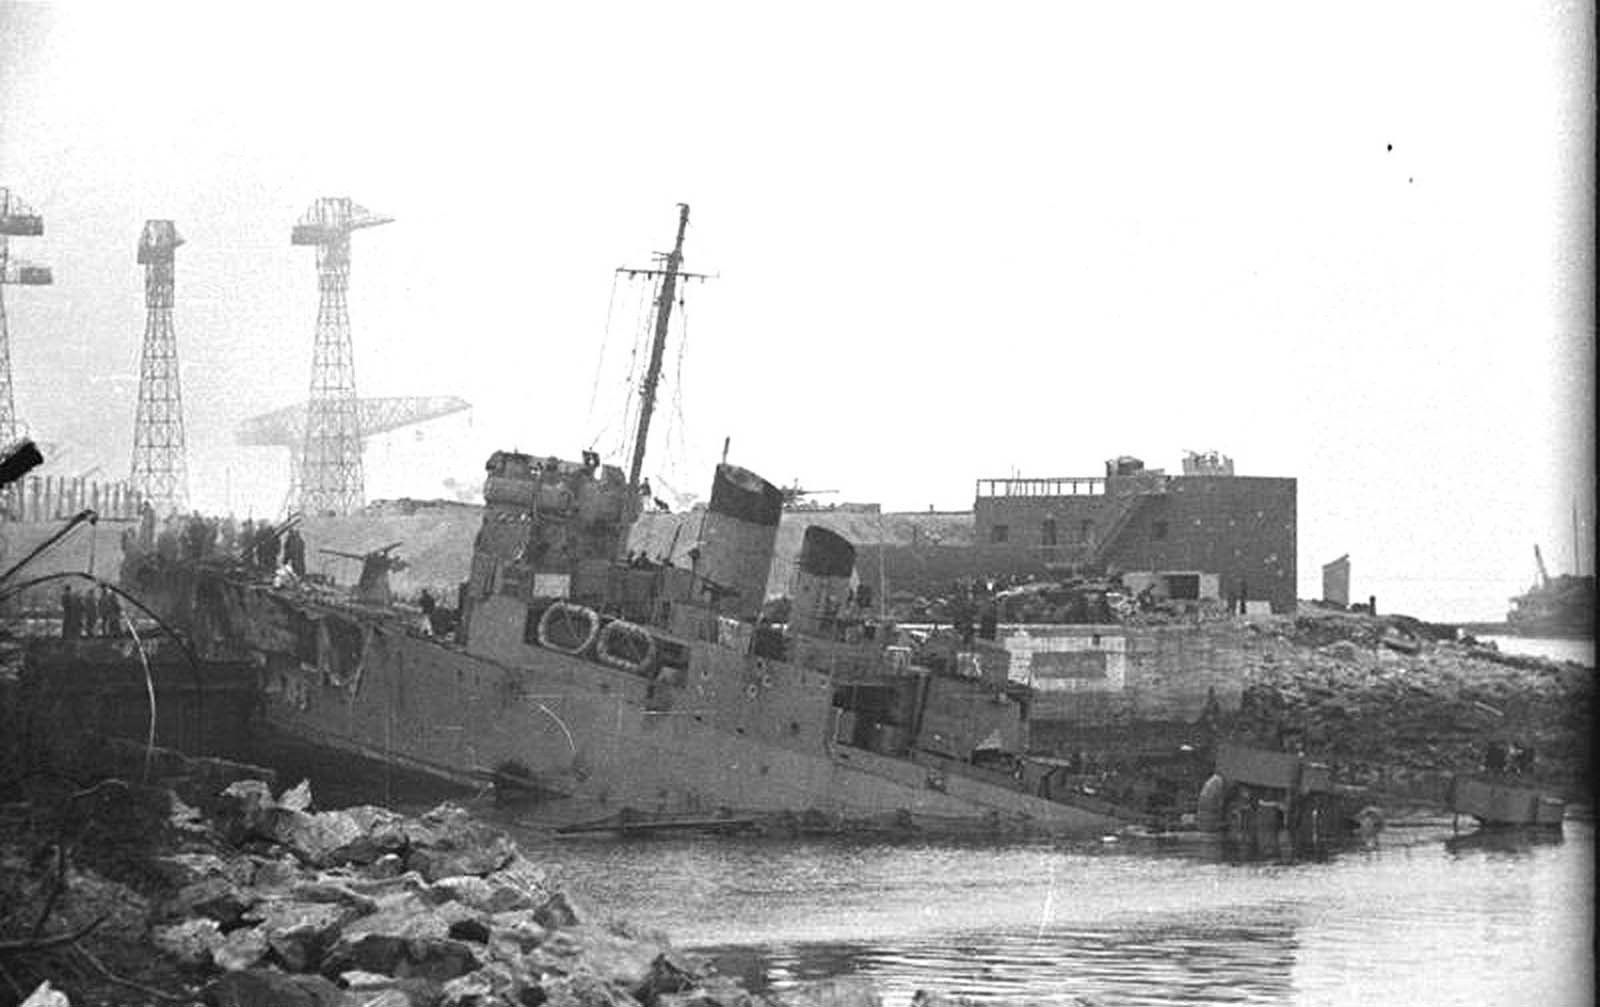 The British destroyer HMS Campbeltown sits destroyed, wedged into the dock gates of Normandie dry dock at St. Nazaire in German-occupied France, on March 28, 1942. Members of the Royal Navy and British Commandos carried out an amphibious raid on the docks earlier that day, attempting to prevent the Germans from possessing such a valuable asset. The Campbeltown was packed with with delayed-action explosives, which later detonated, killing more than 300 Germans and knocking the dock out of commission.